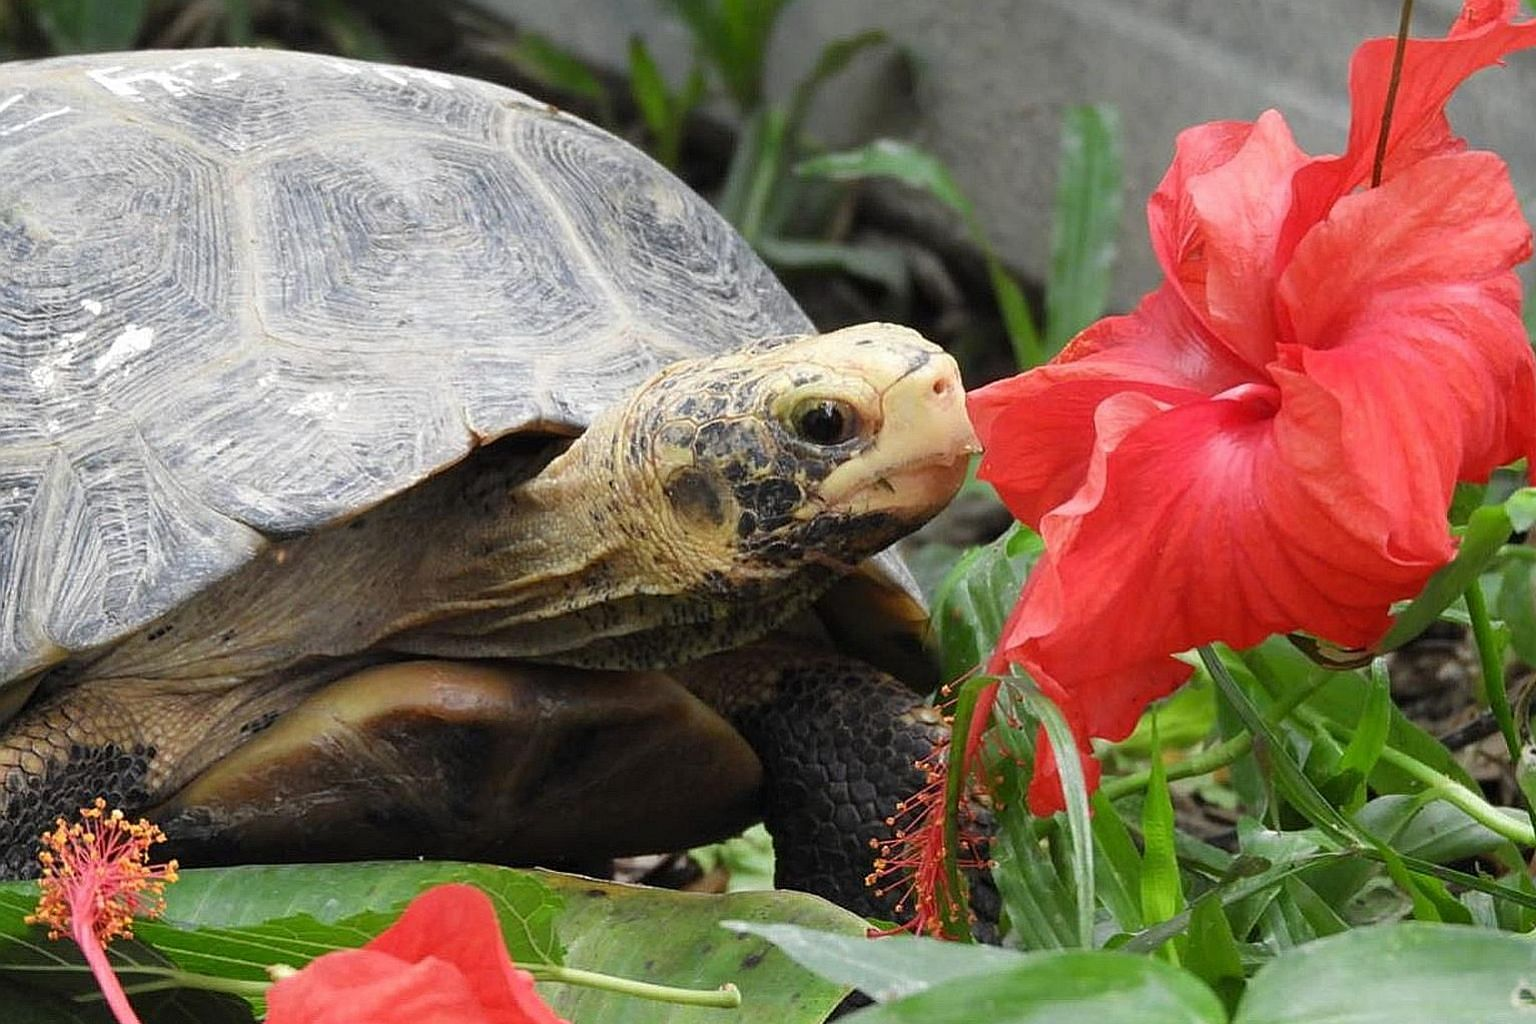 Hawkeye, a Forsten's tortoise rescued by Acres in 2015, was due to be released into a protected habitat in Indonesia last month, but travel curbs derailed the plan.